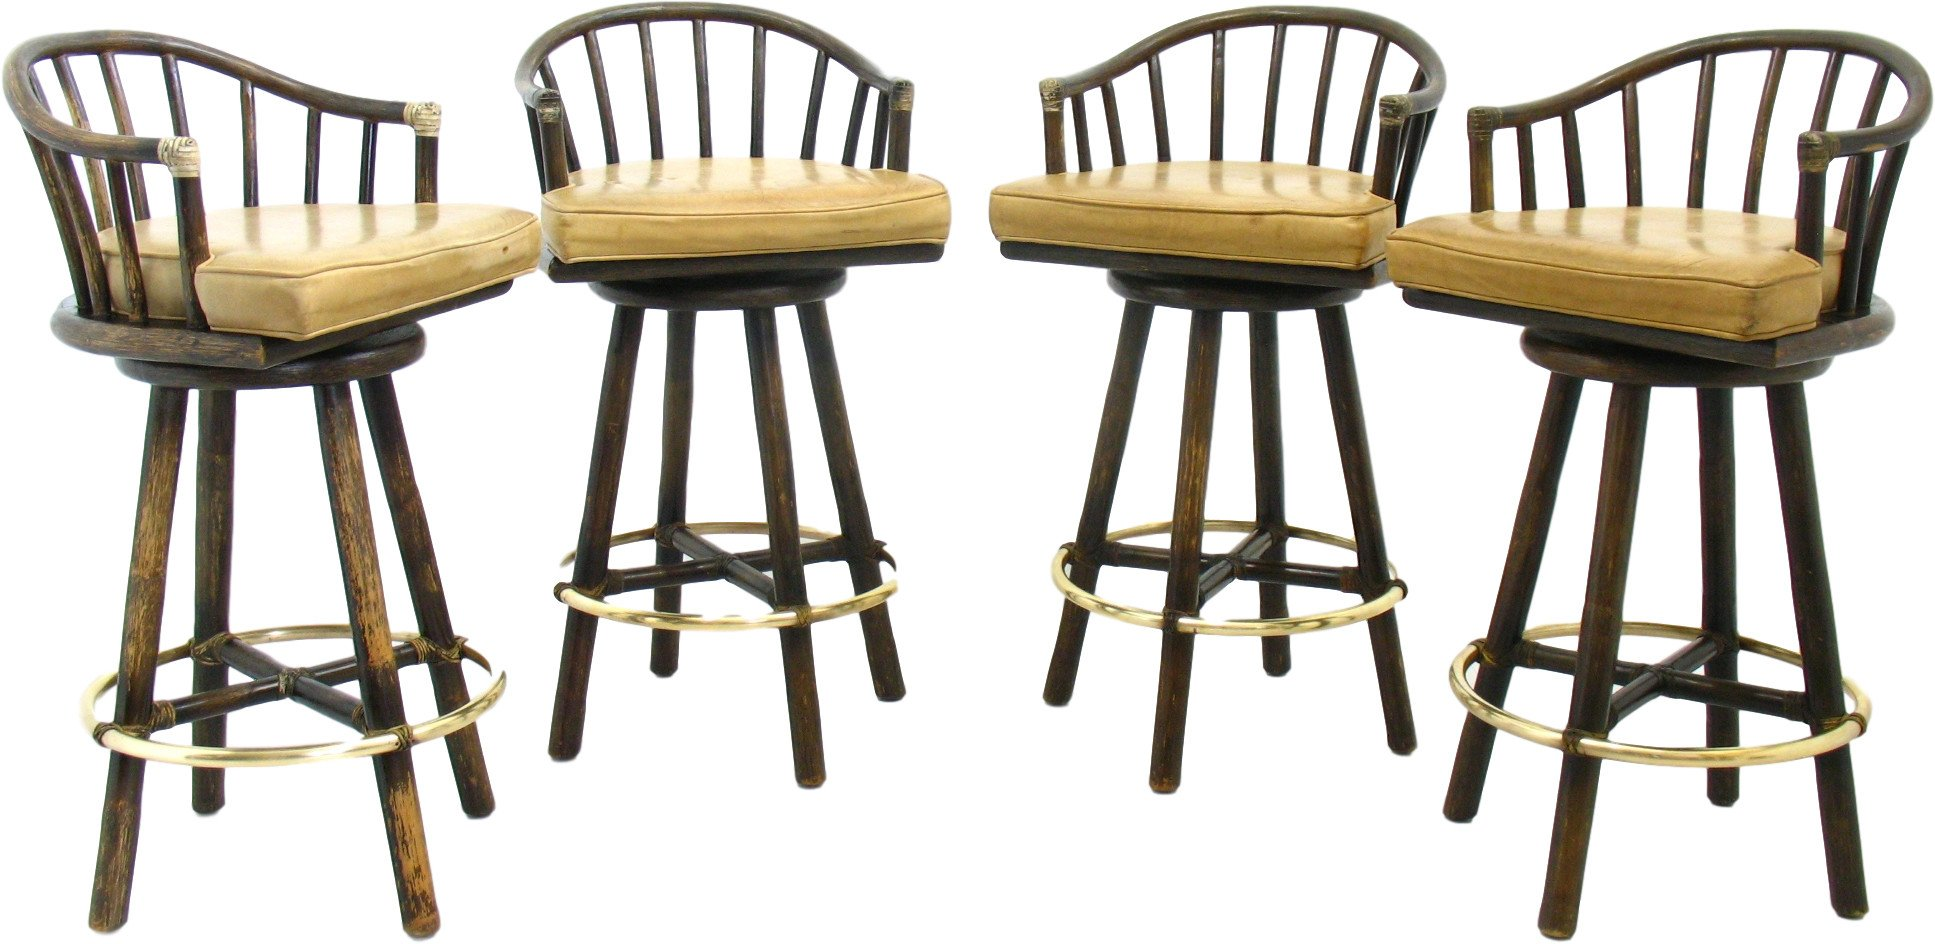 Set of Four Bar Stools, United States of America, 1970s